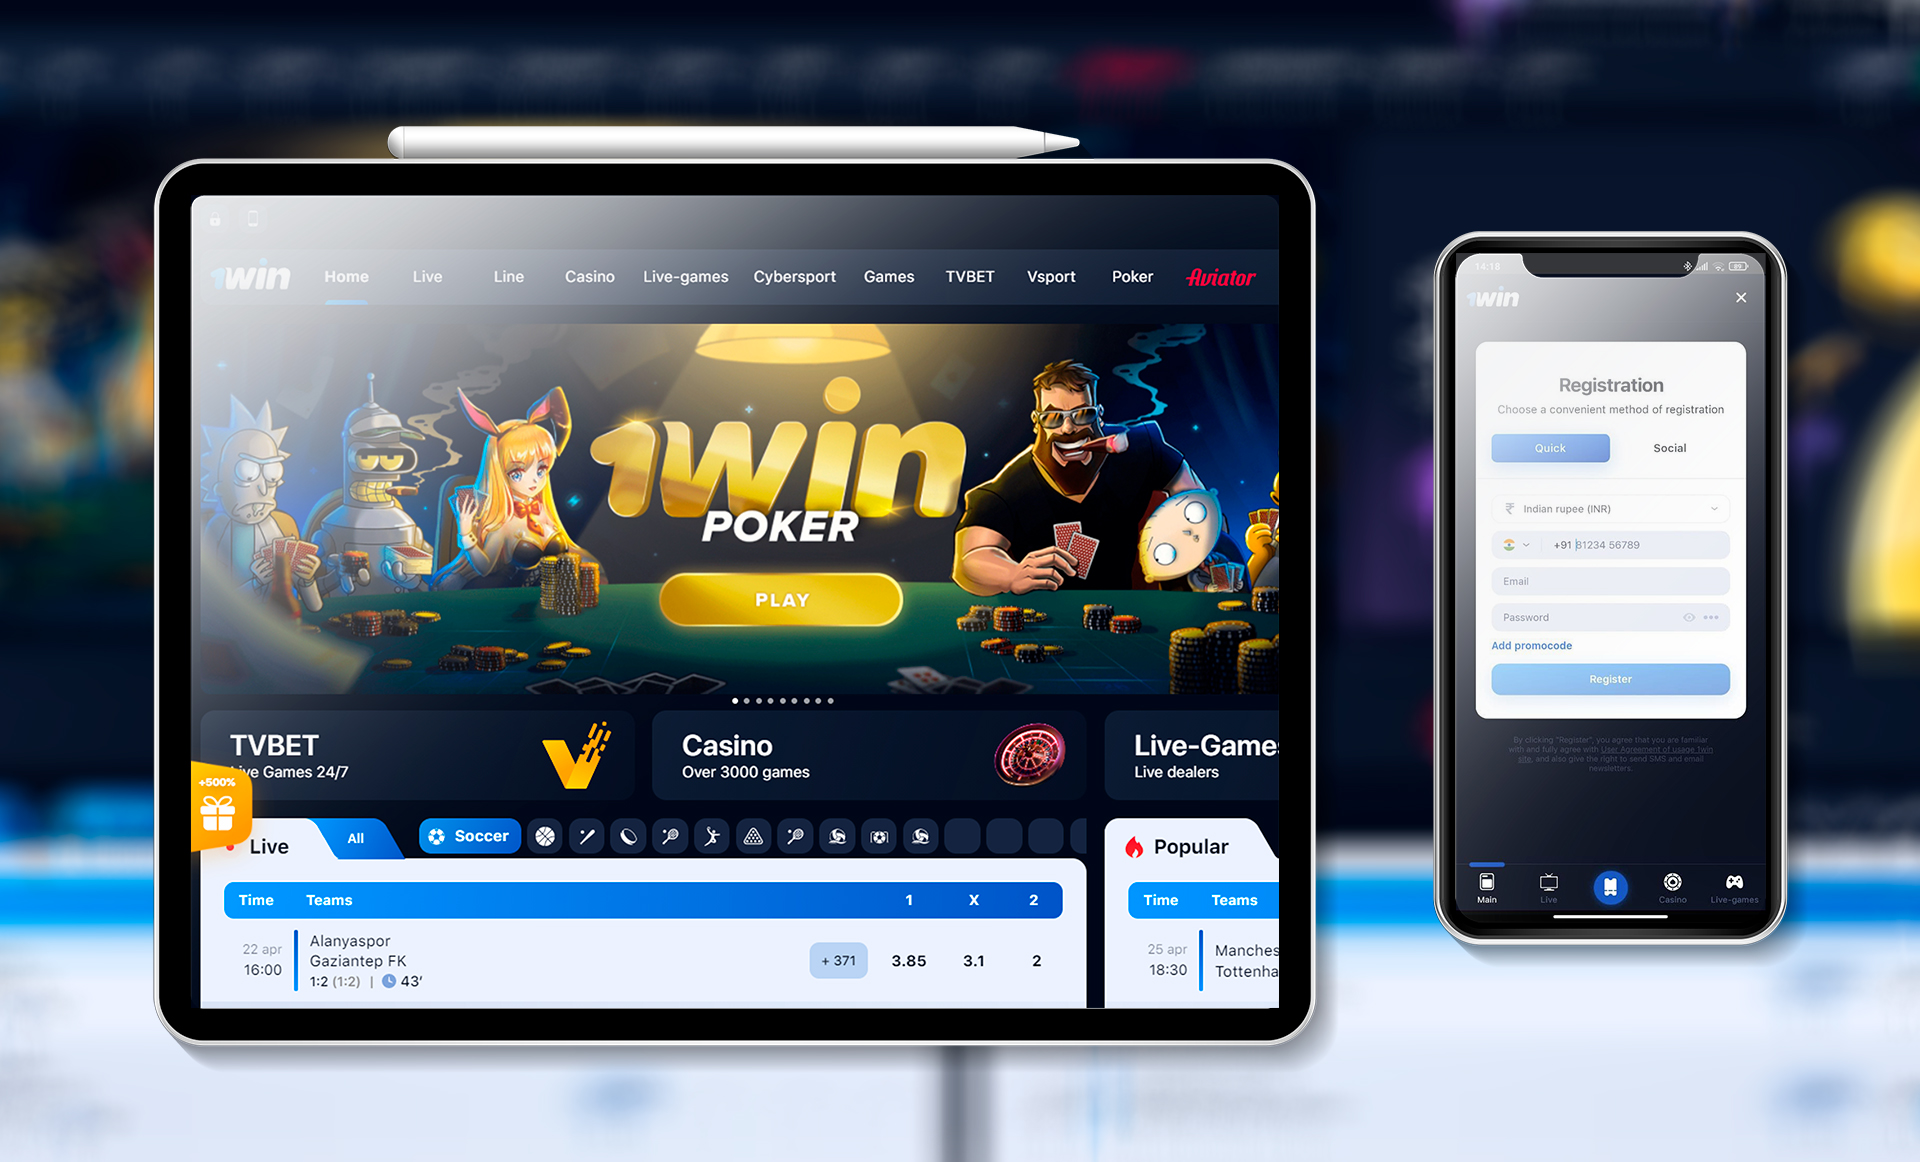 1win mobile app is the most convenient way for betting or gambling whenever you want.